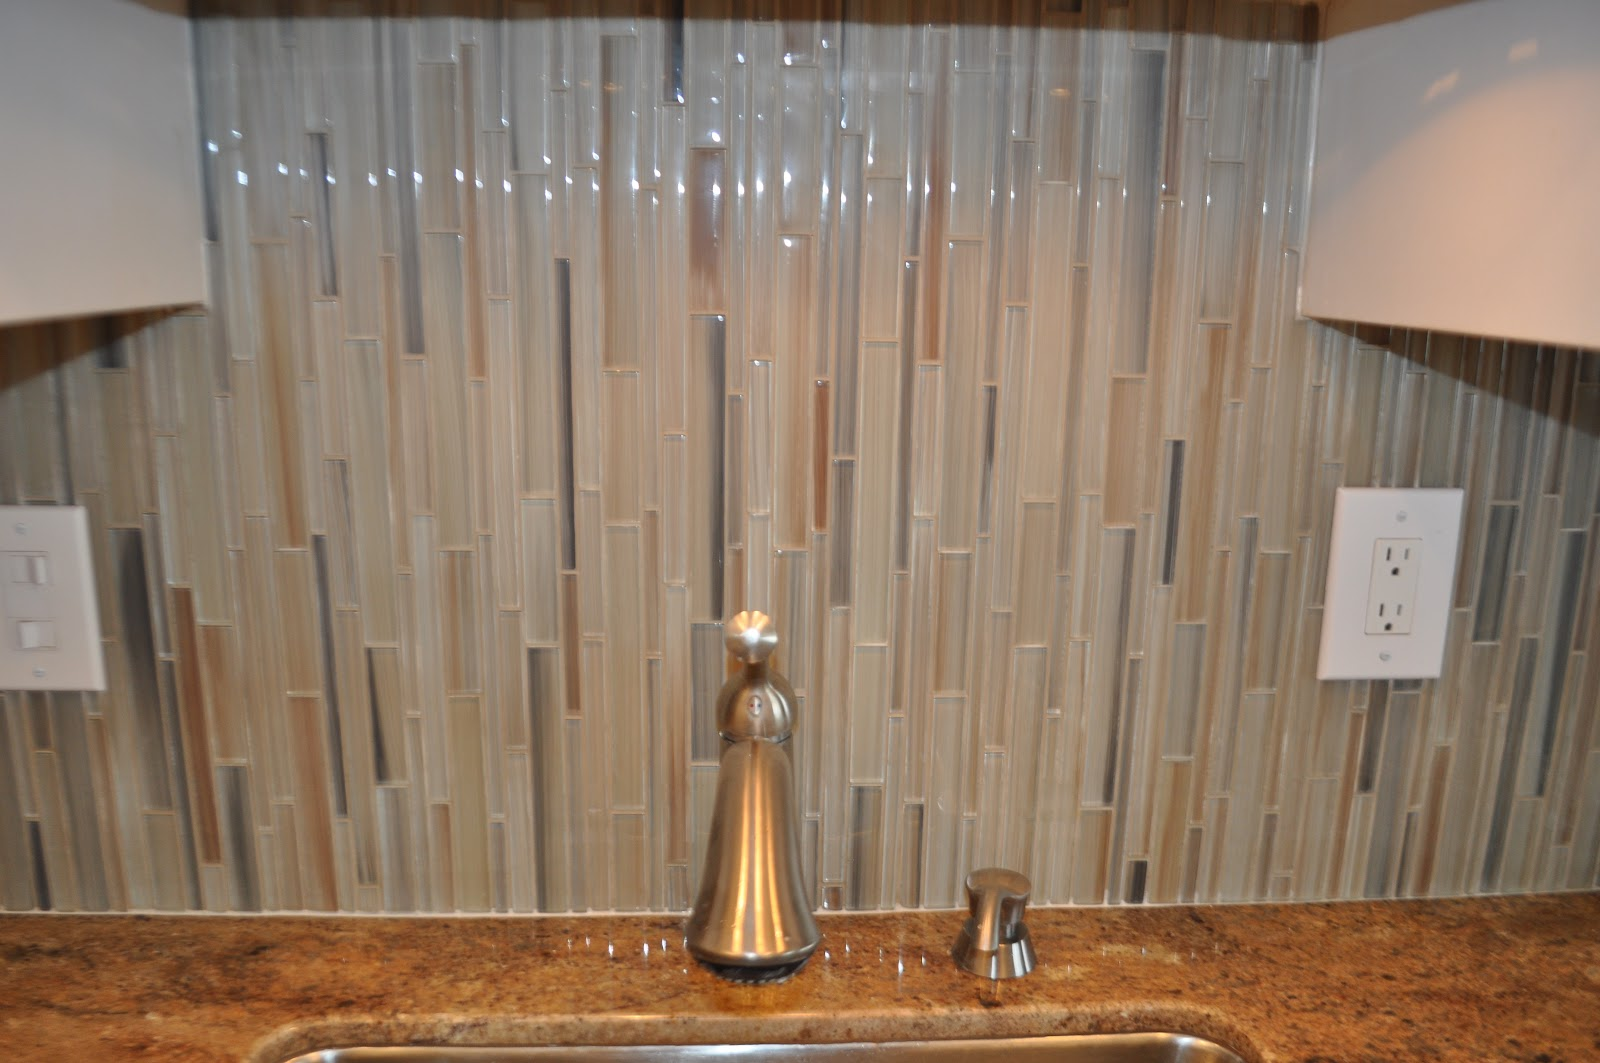 North Kihei Glass Tile Backsplash Higher Standard Tile